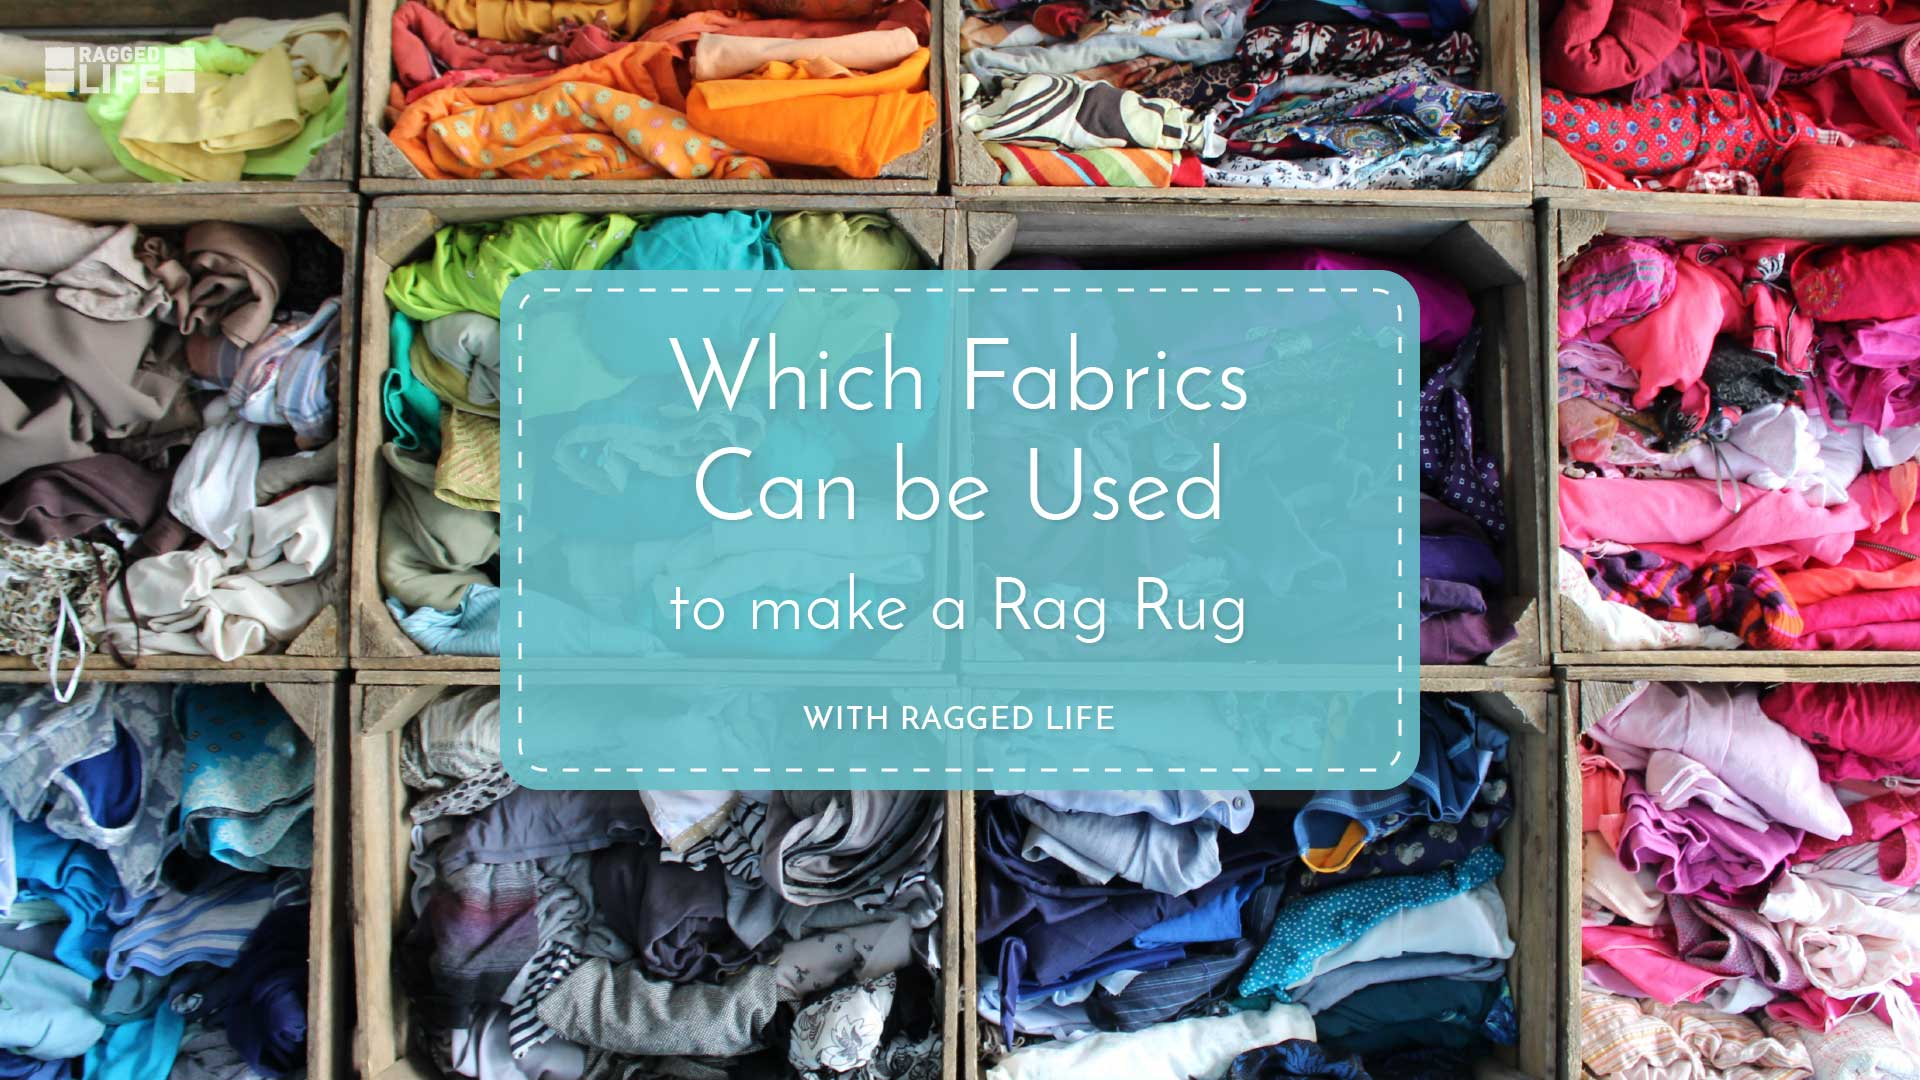 What Fabrics can be used to make a rag rug video